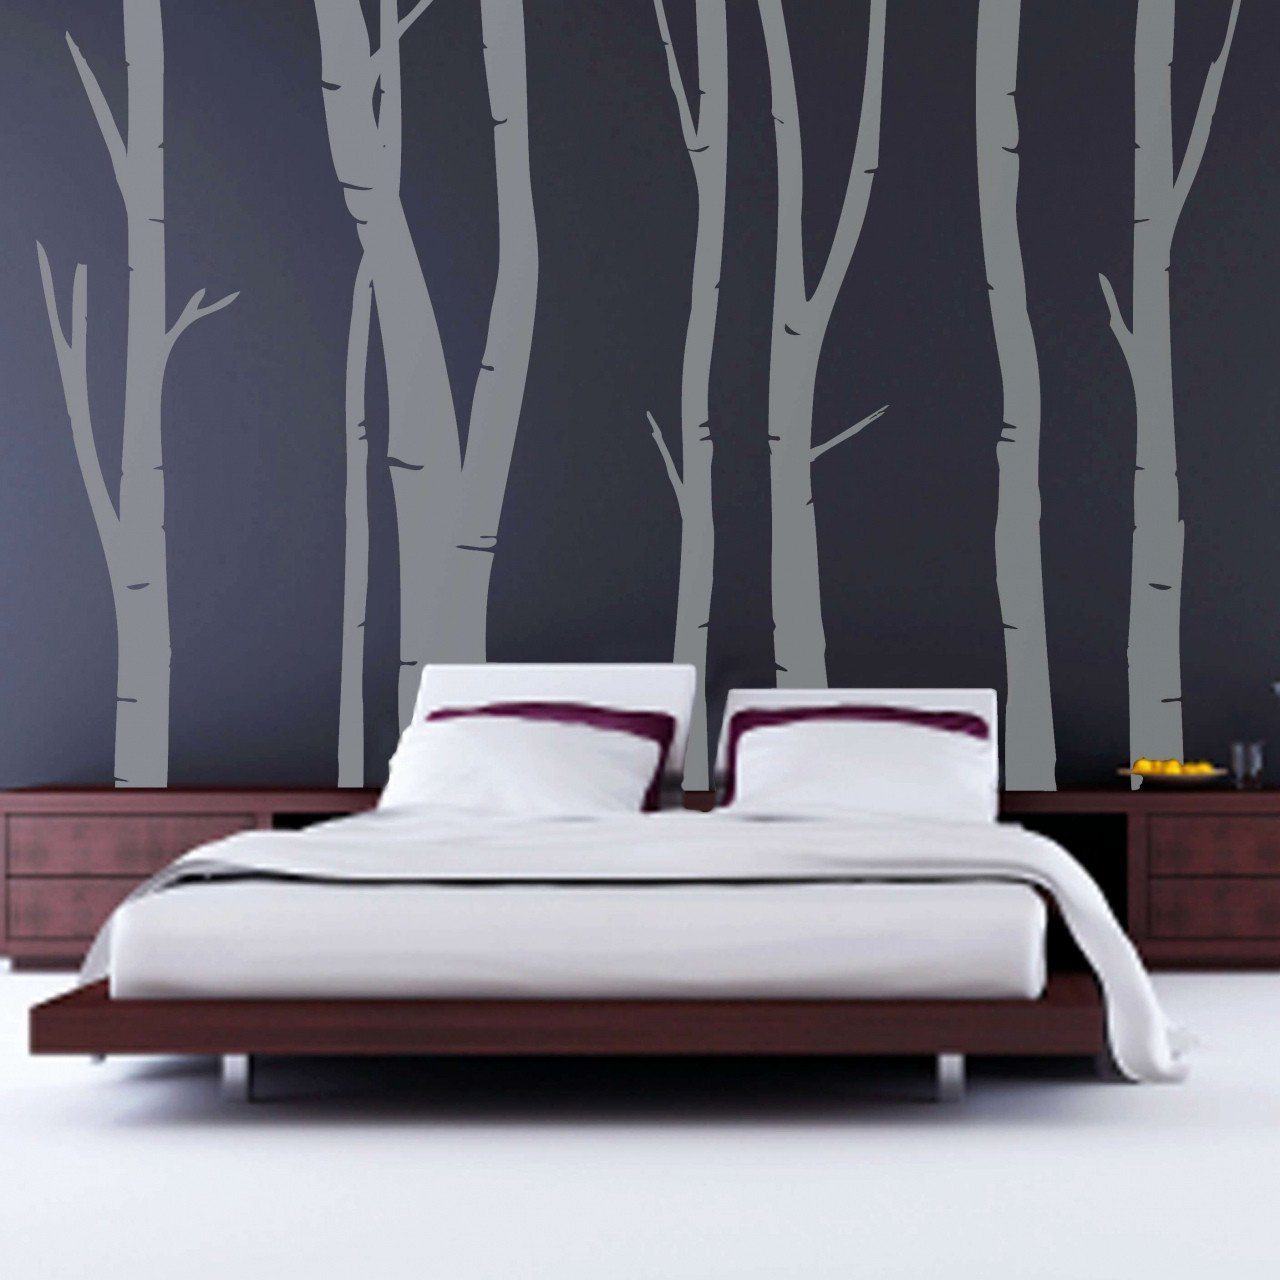 Red Grey and Black Bedroom Lovely Bedroom Art Wall Decals for Bedroom Unique 1 Kirkland Wall